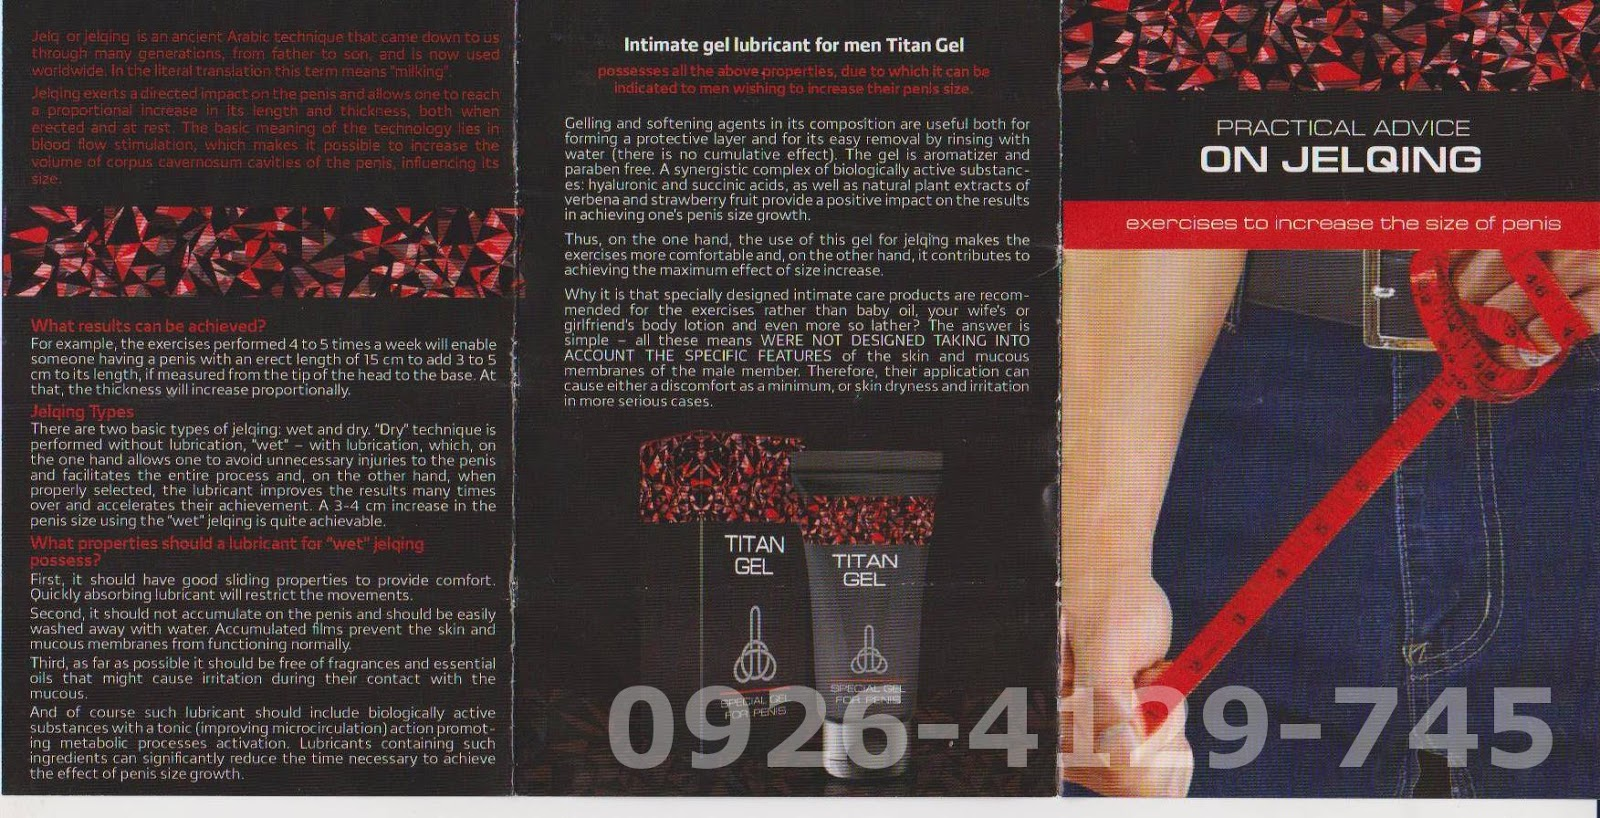 titan gel philippines 0926 4129 745 practical use of titan gel cream